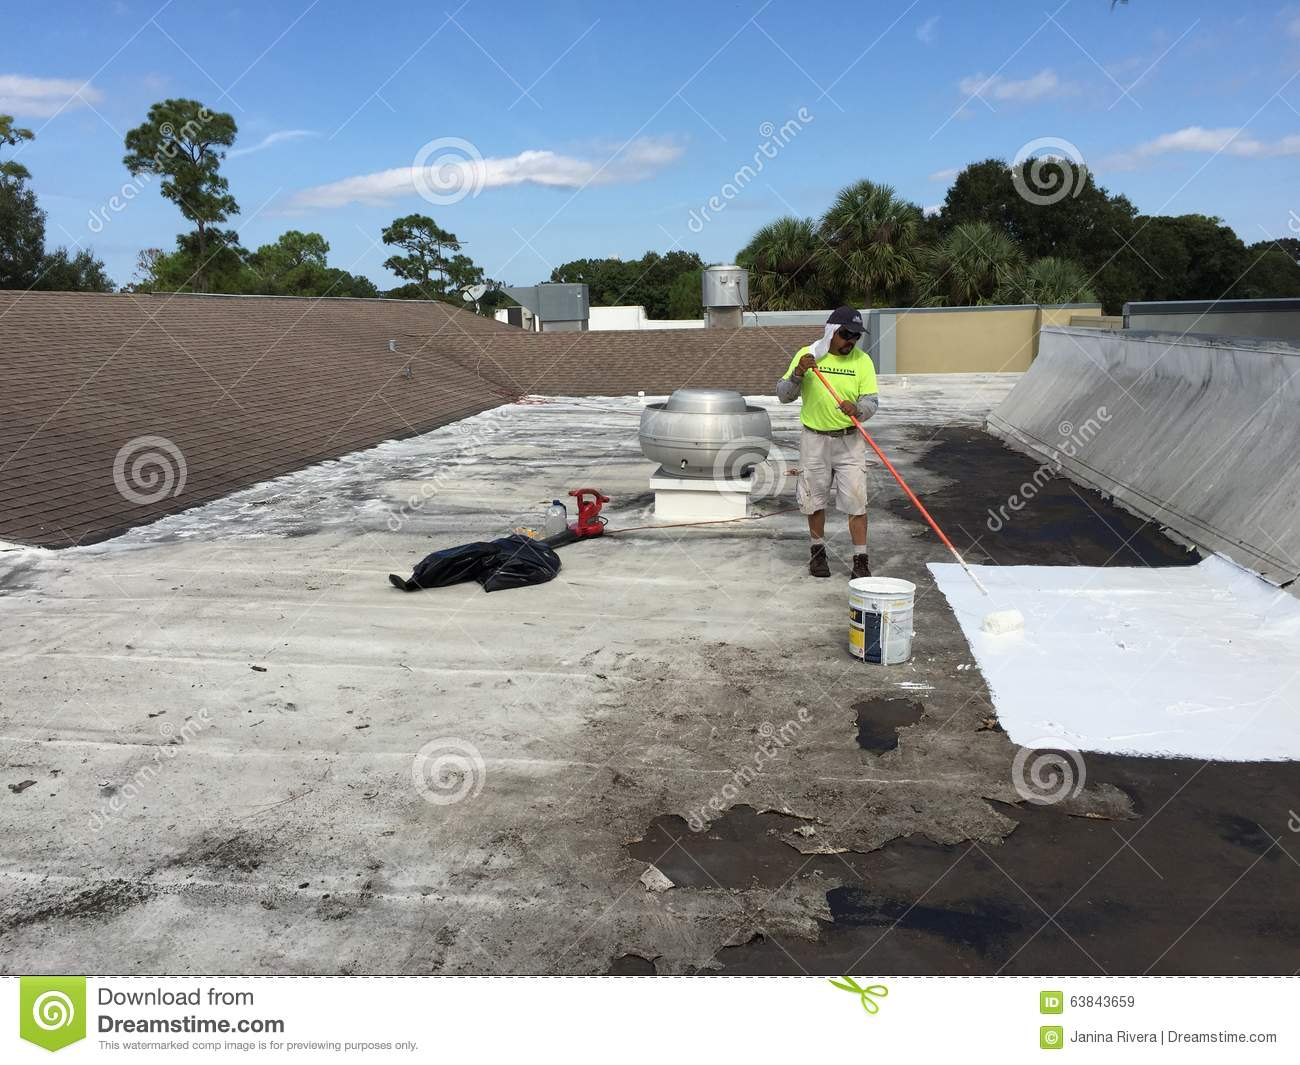 Commercial Flat Roof Leak Repairs; Roofer,